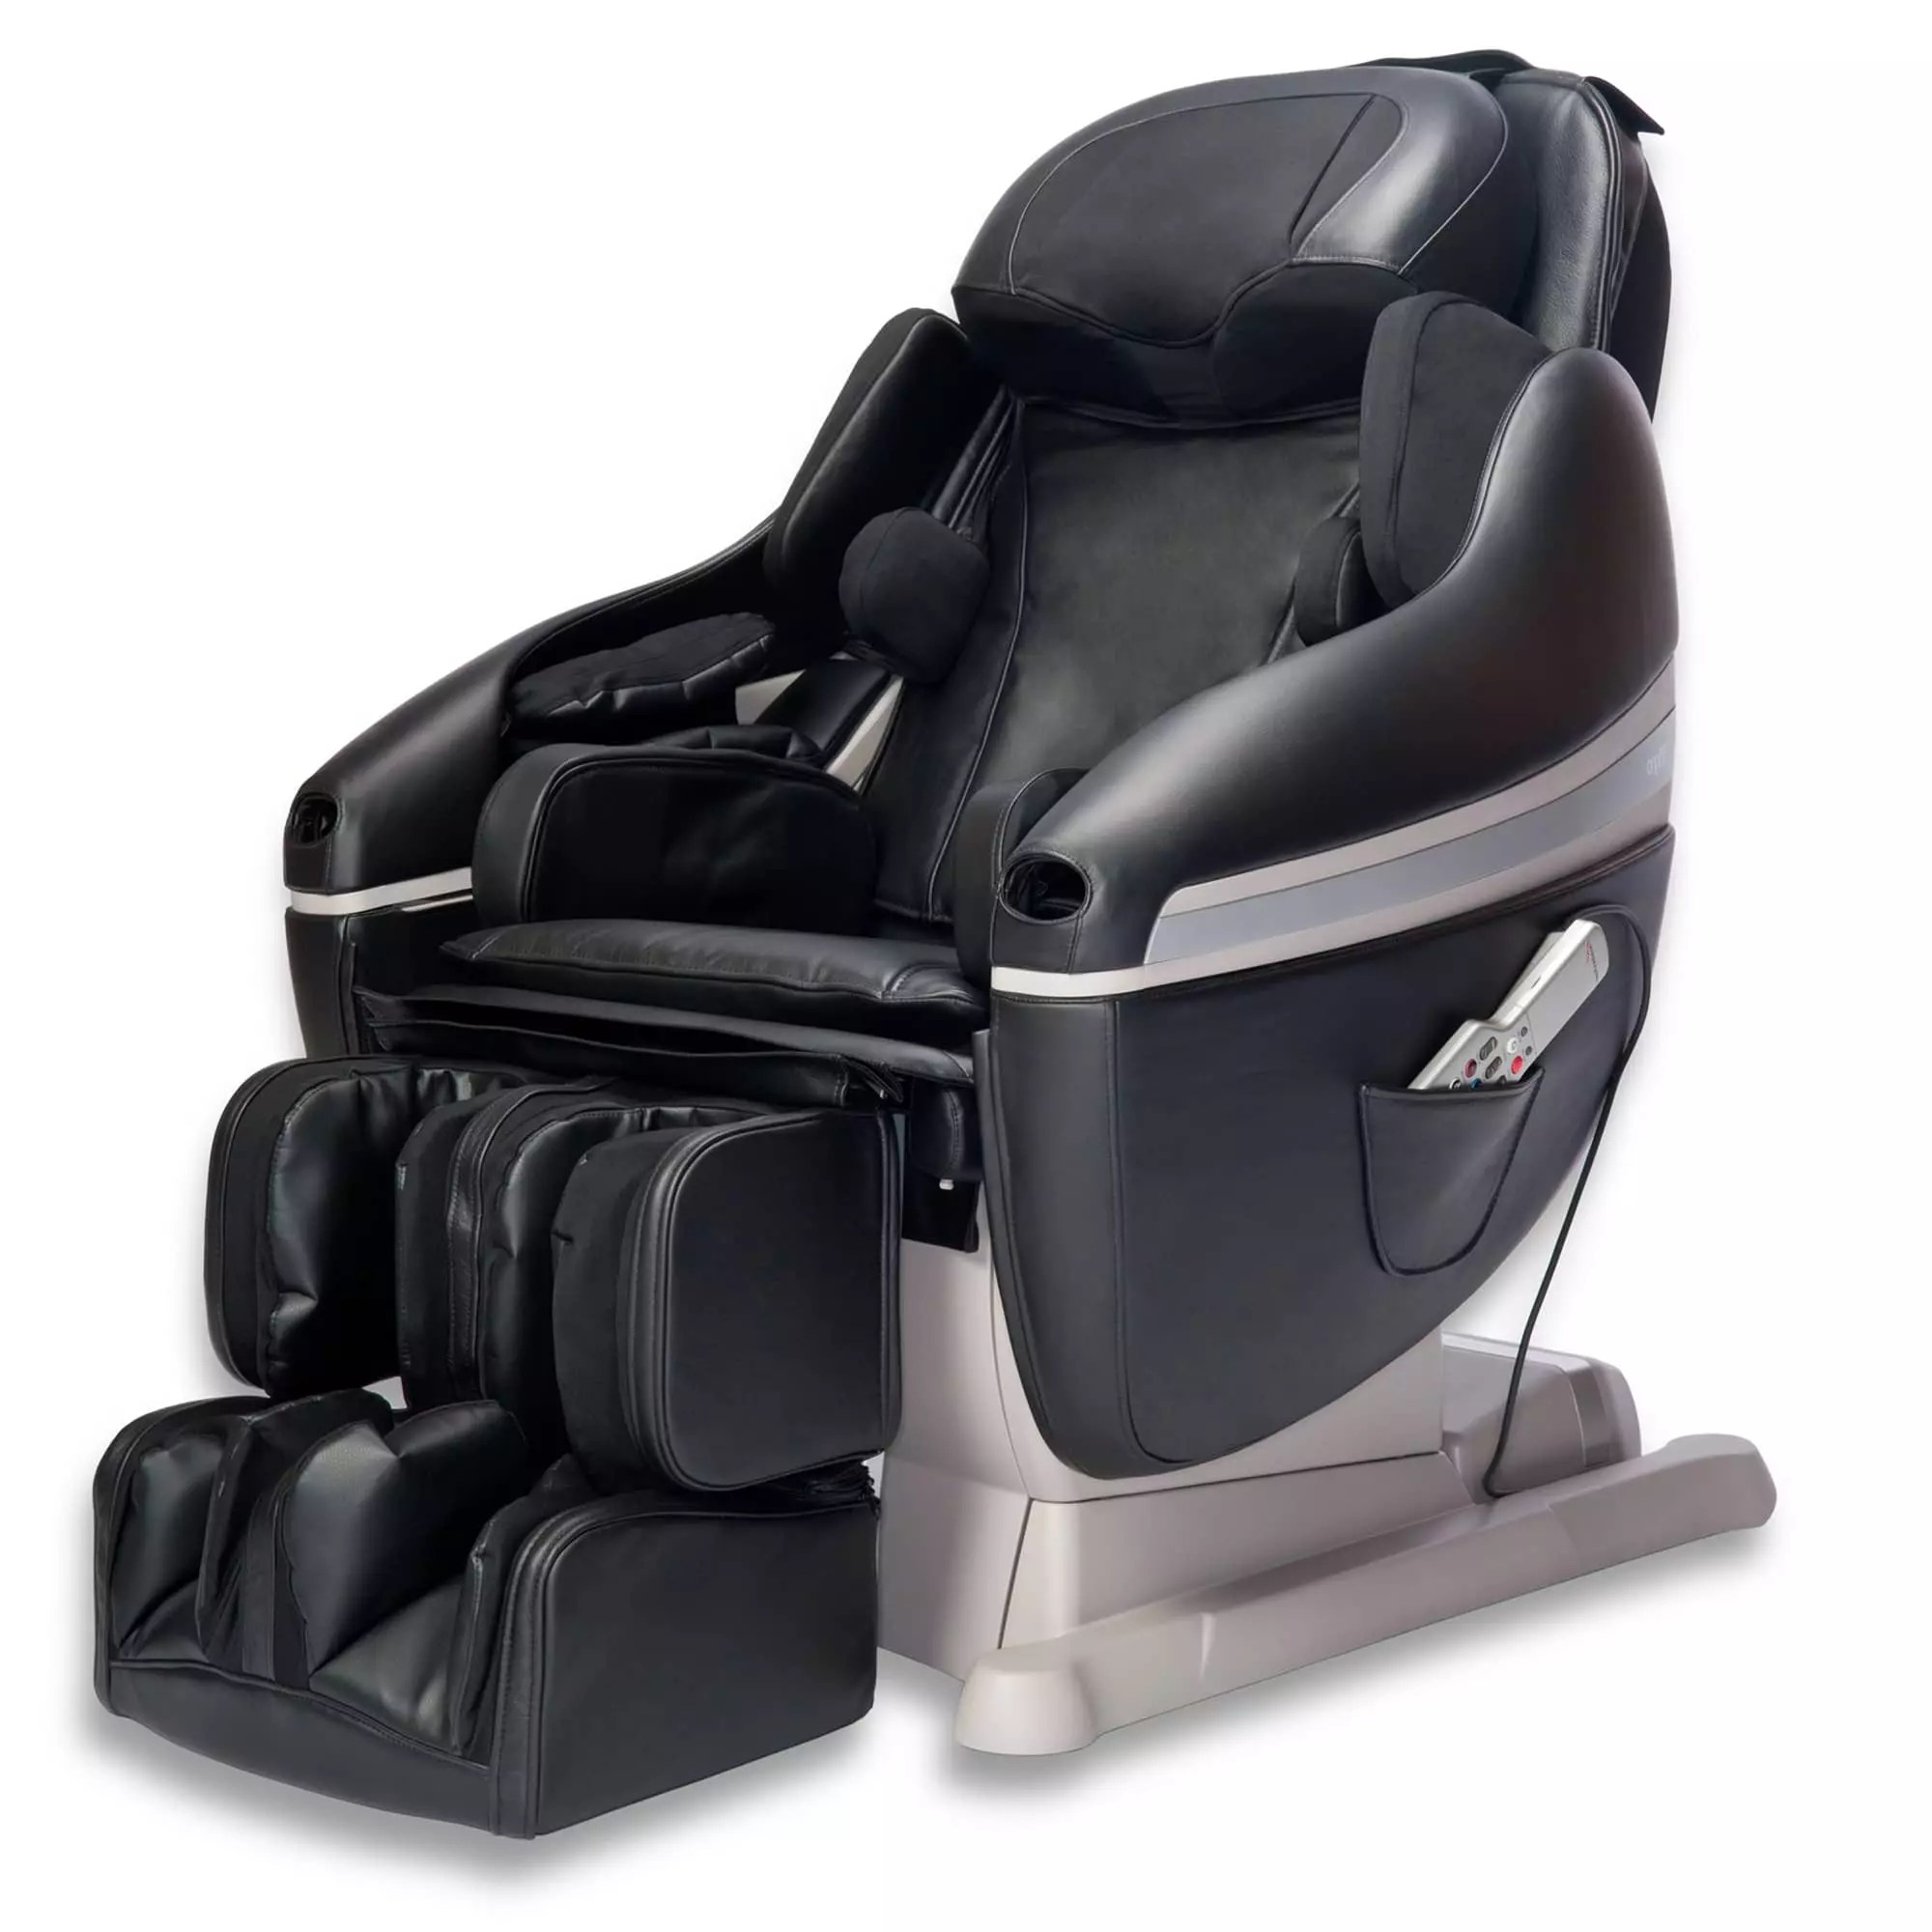 Inada Chair Inada Sogno Massage Chair Enhance Natural Healing And